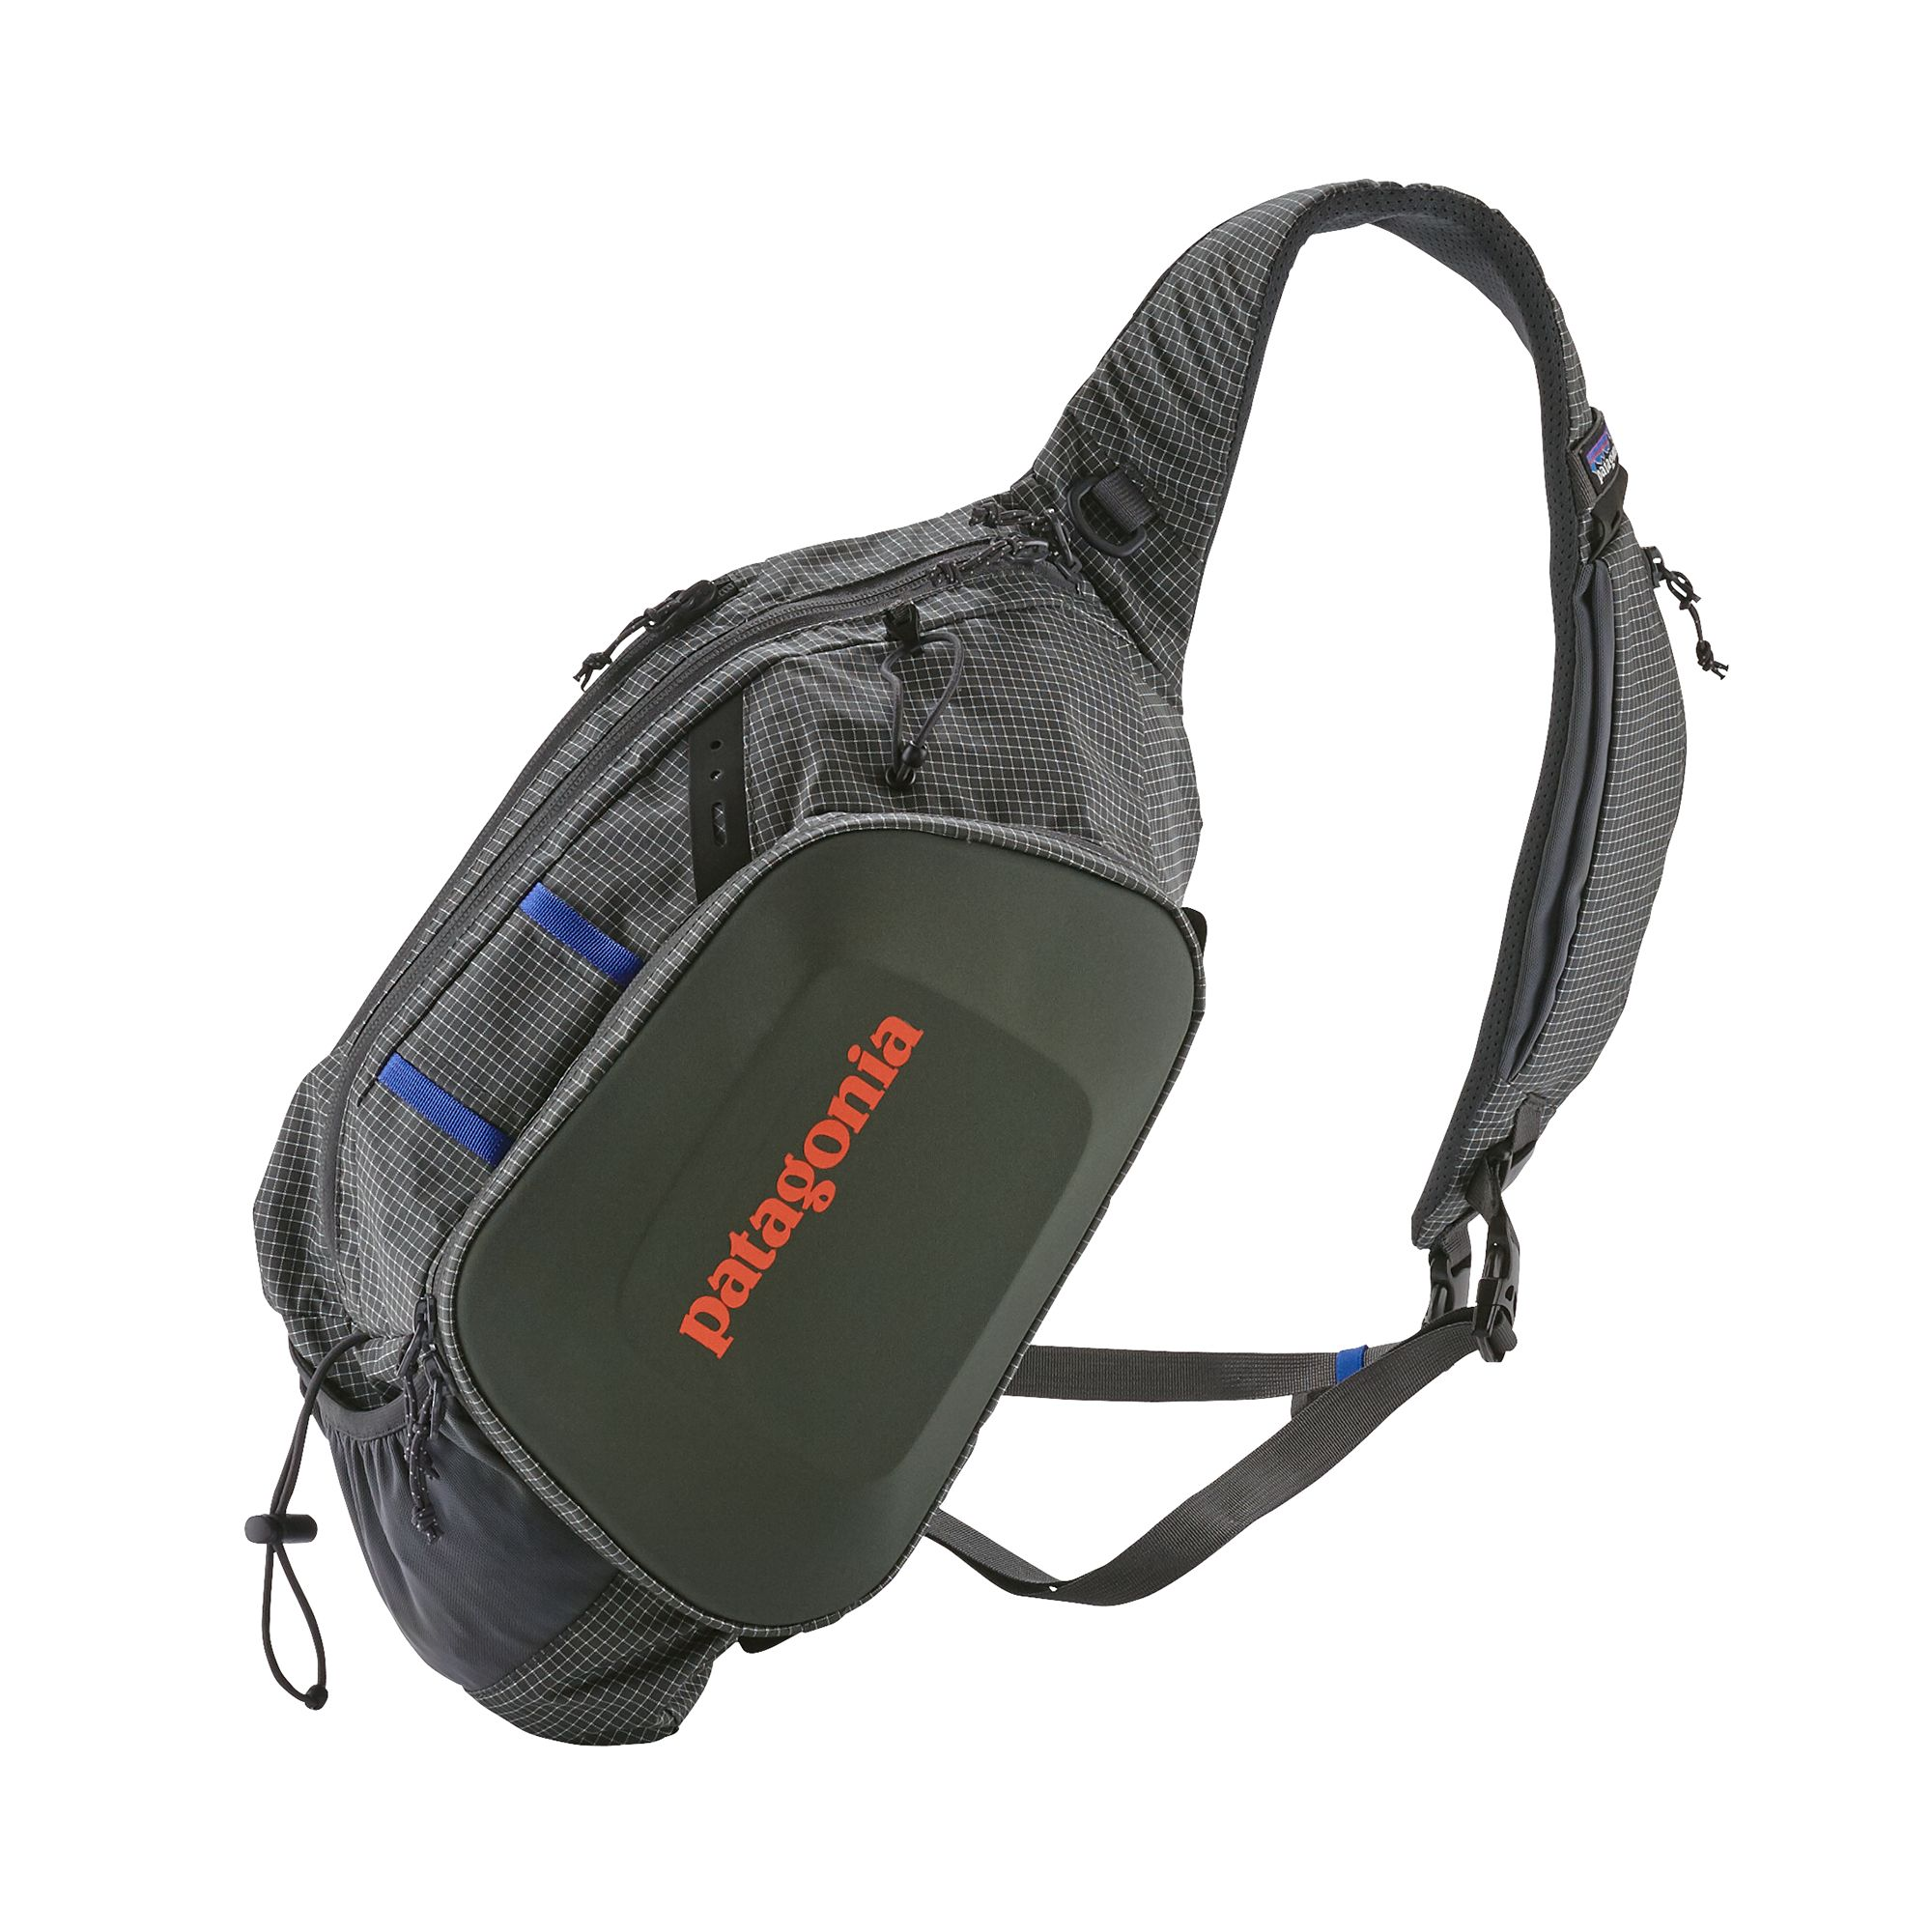 Patagonia Stealth Atom Sling 15L:  https://ironbowflyshop.ca/collections/luggage/products/patagonia-stealth-atom-sling-15l-1